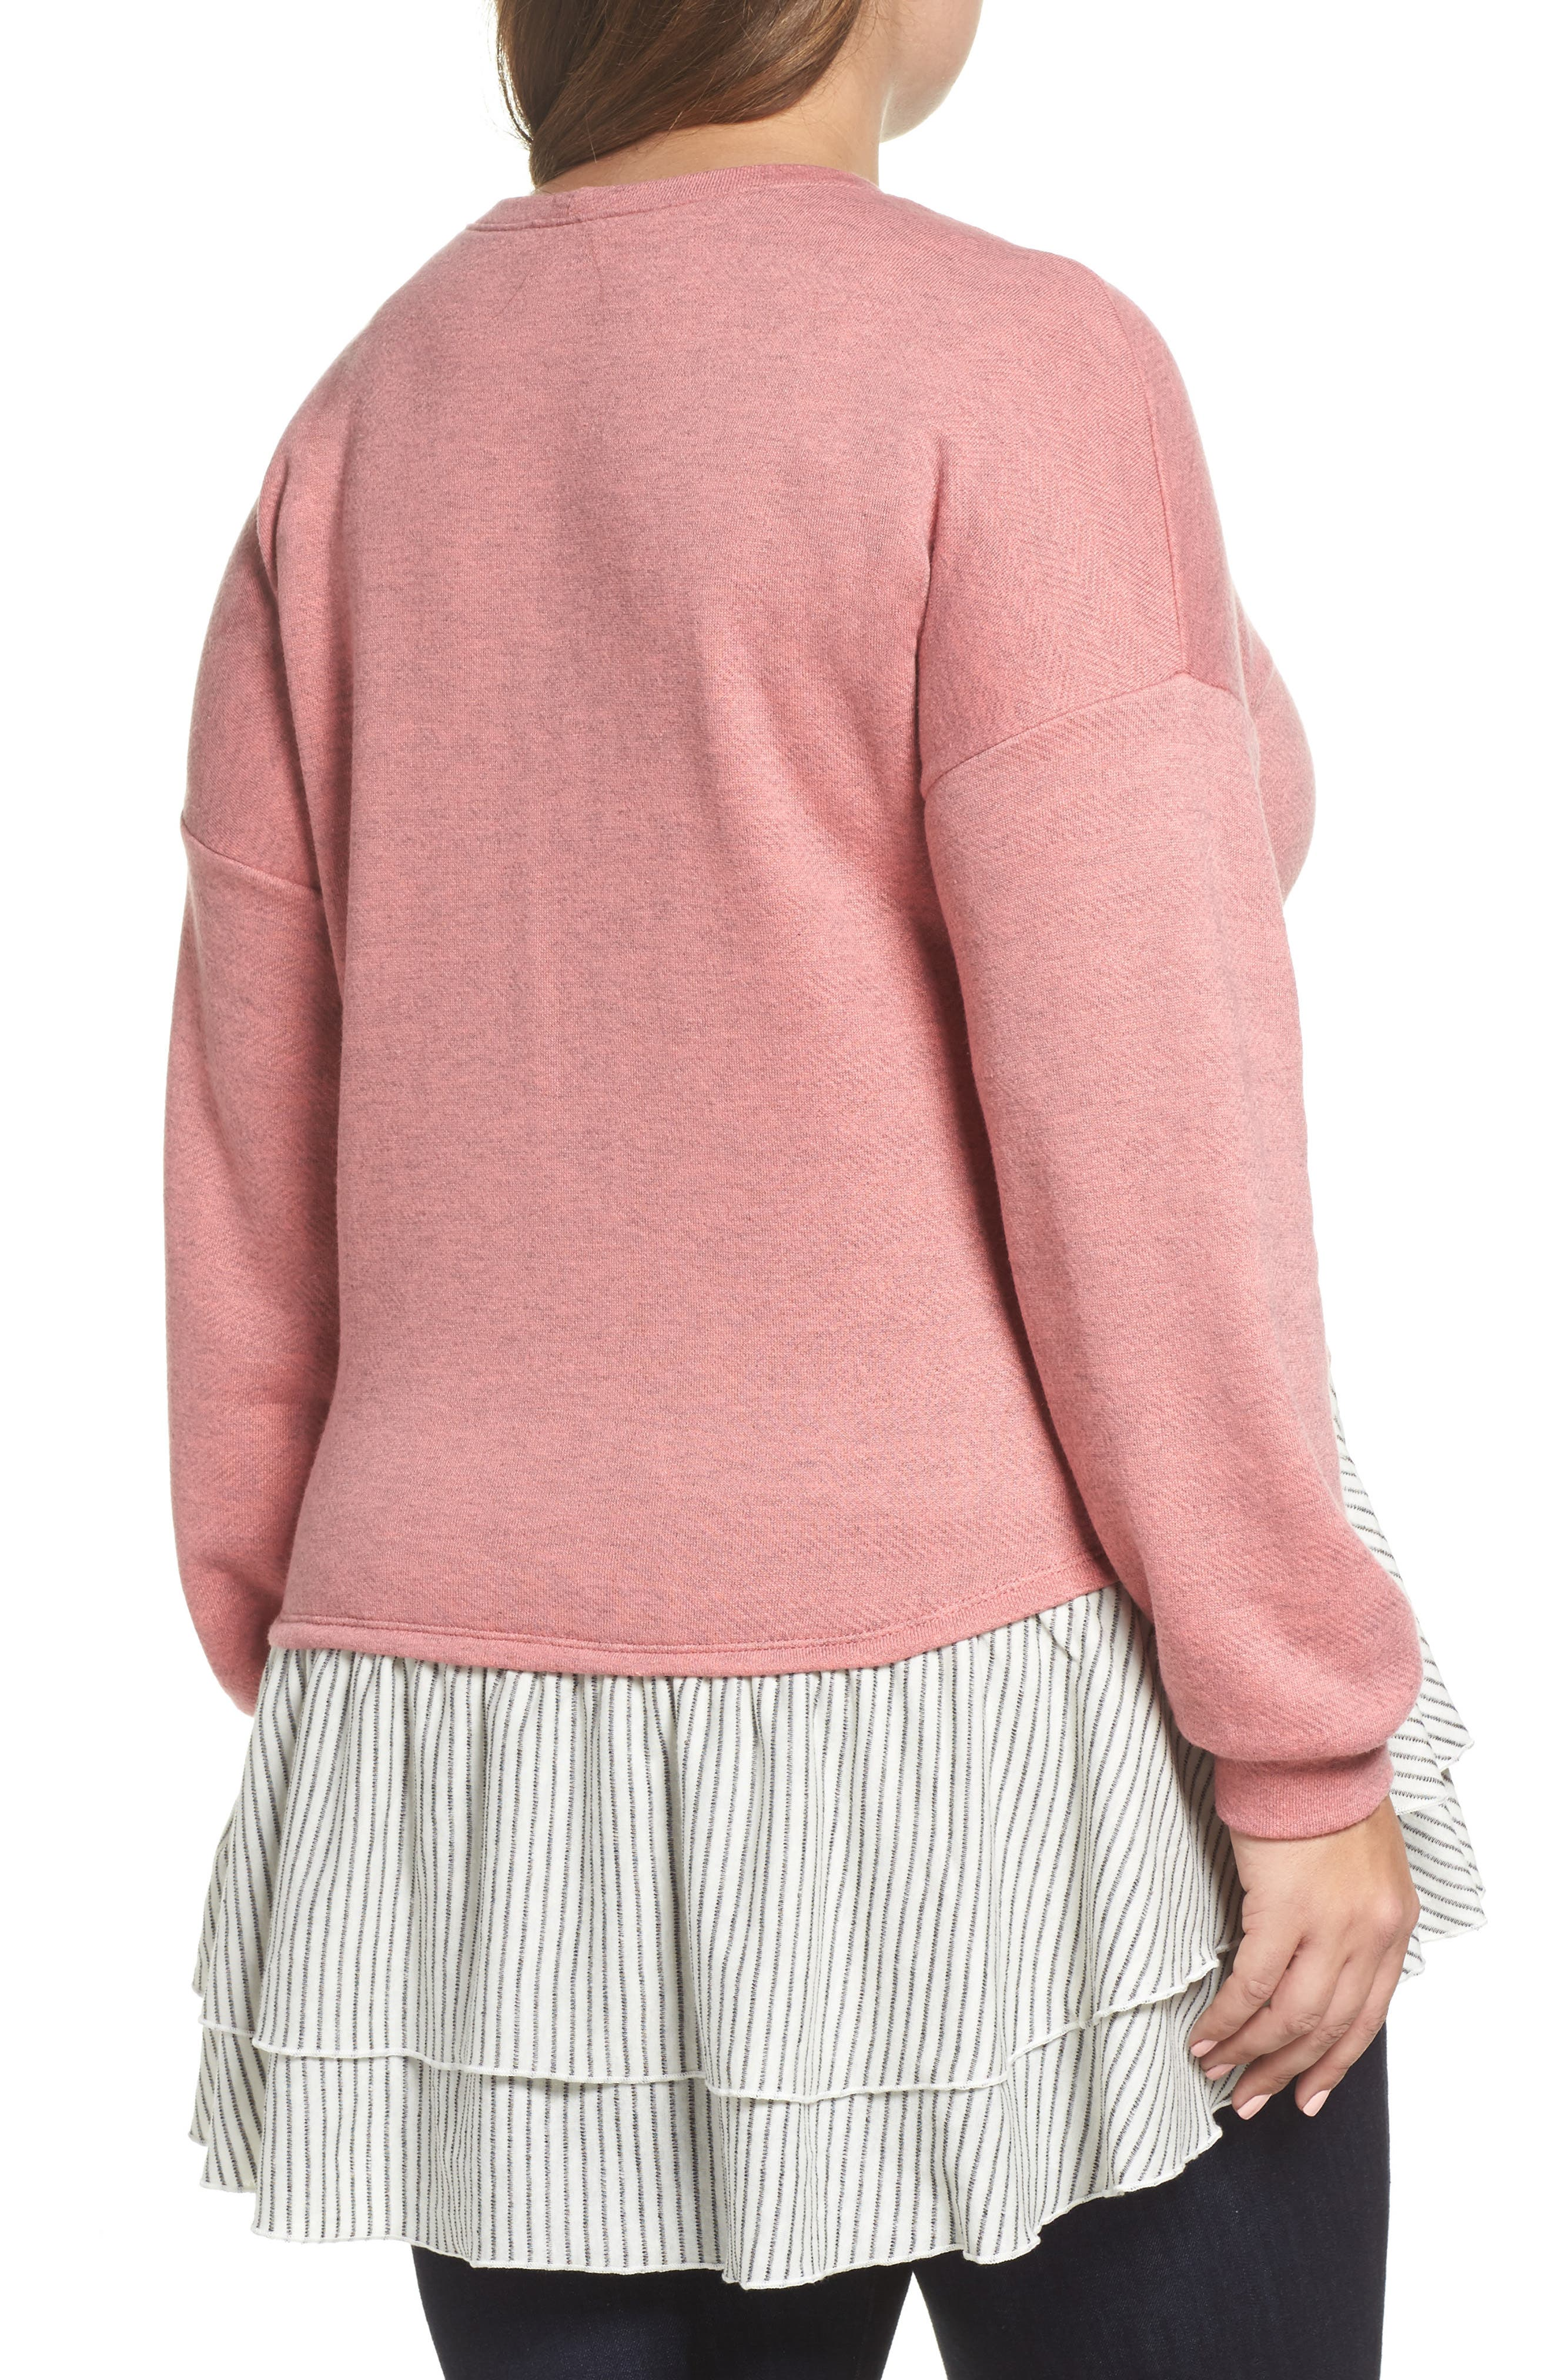 Layered Look Sweatshirt,                             Alternate thumbnail 2, color,                             Coral- Navy Stripe Colorblock